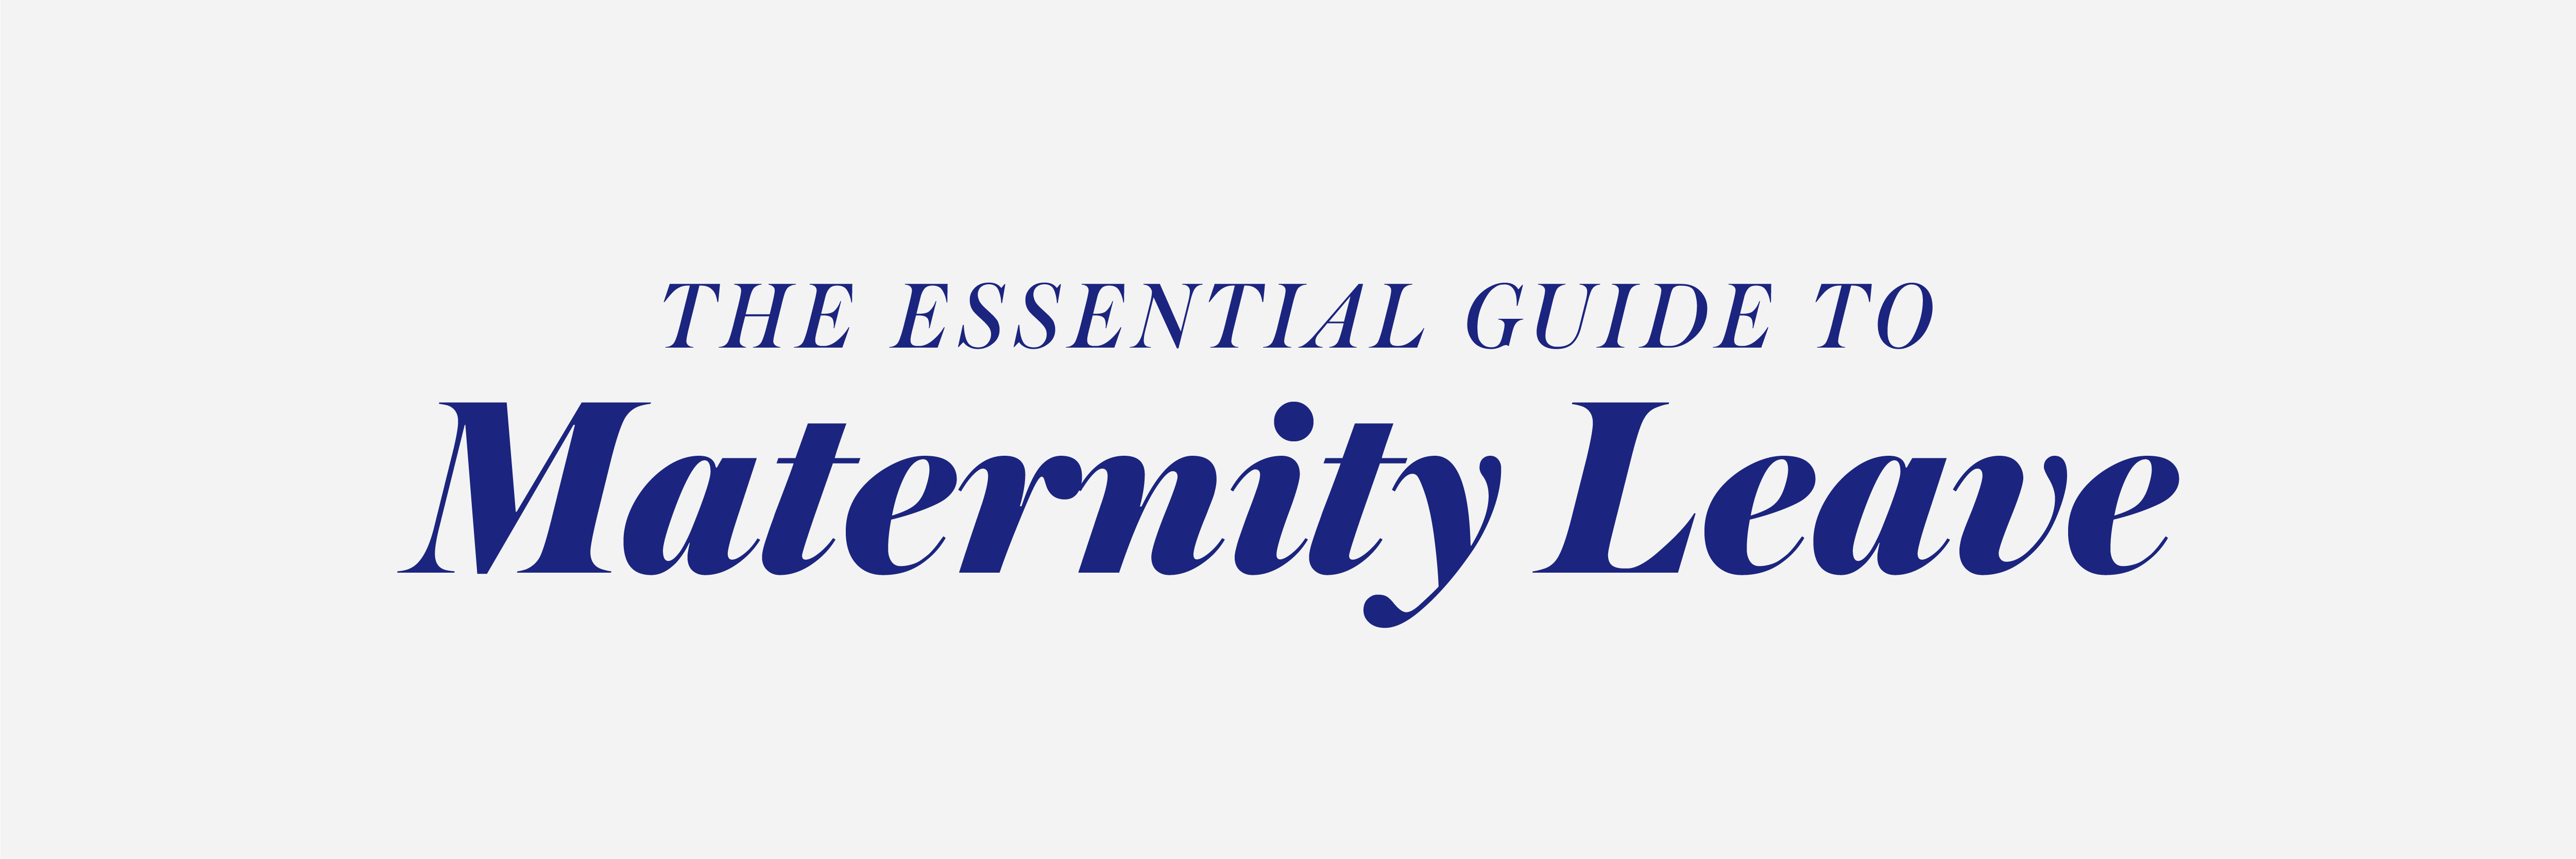 essential guide to maternity leave